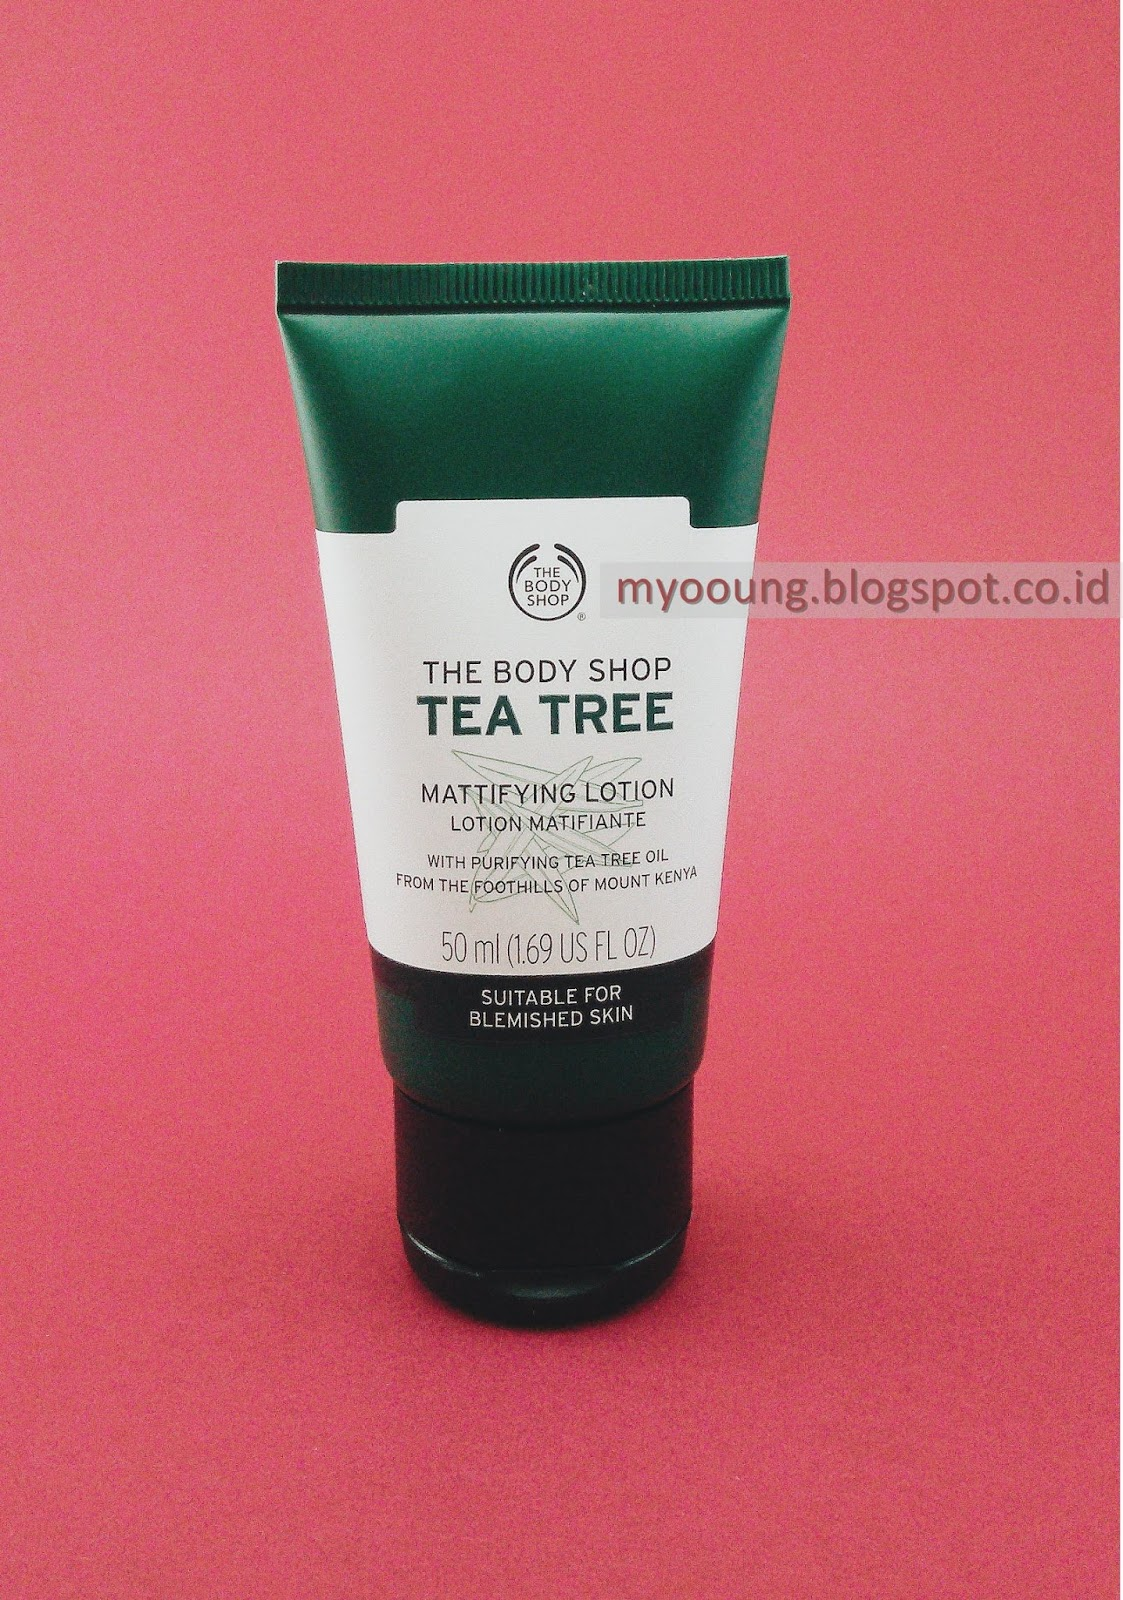 Review The Body Shop Tea Tree - Mattifying Lotion - Myooung